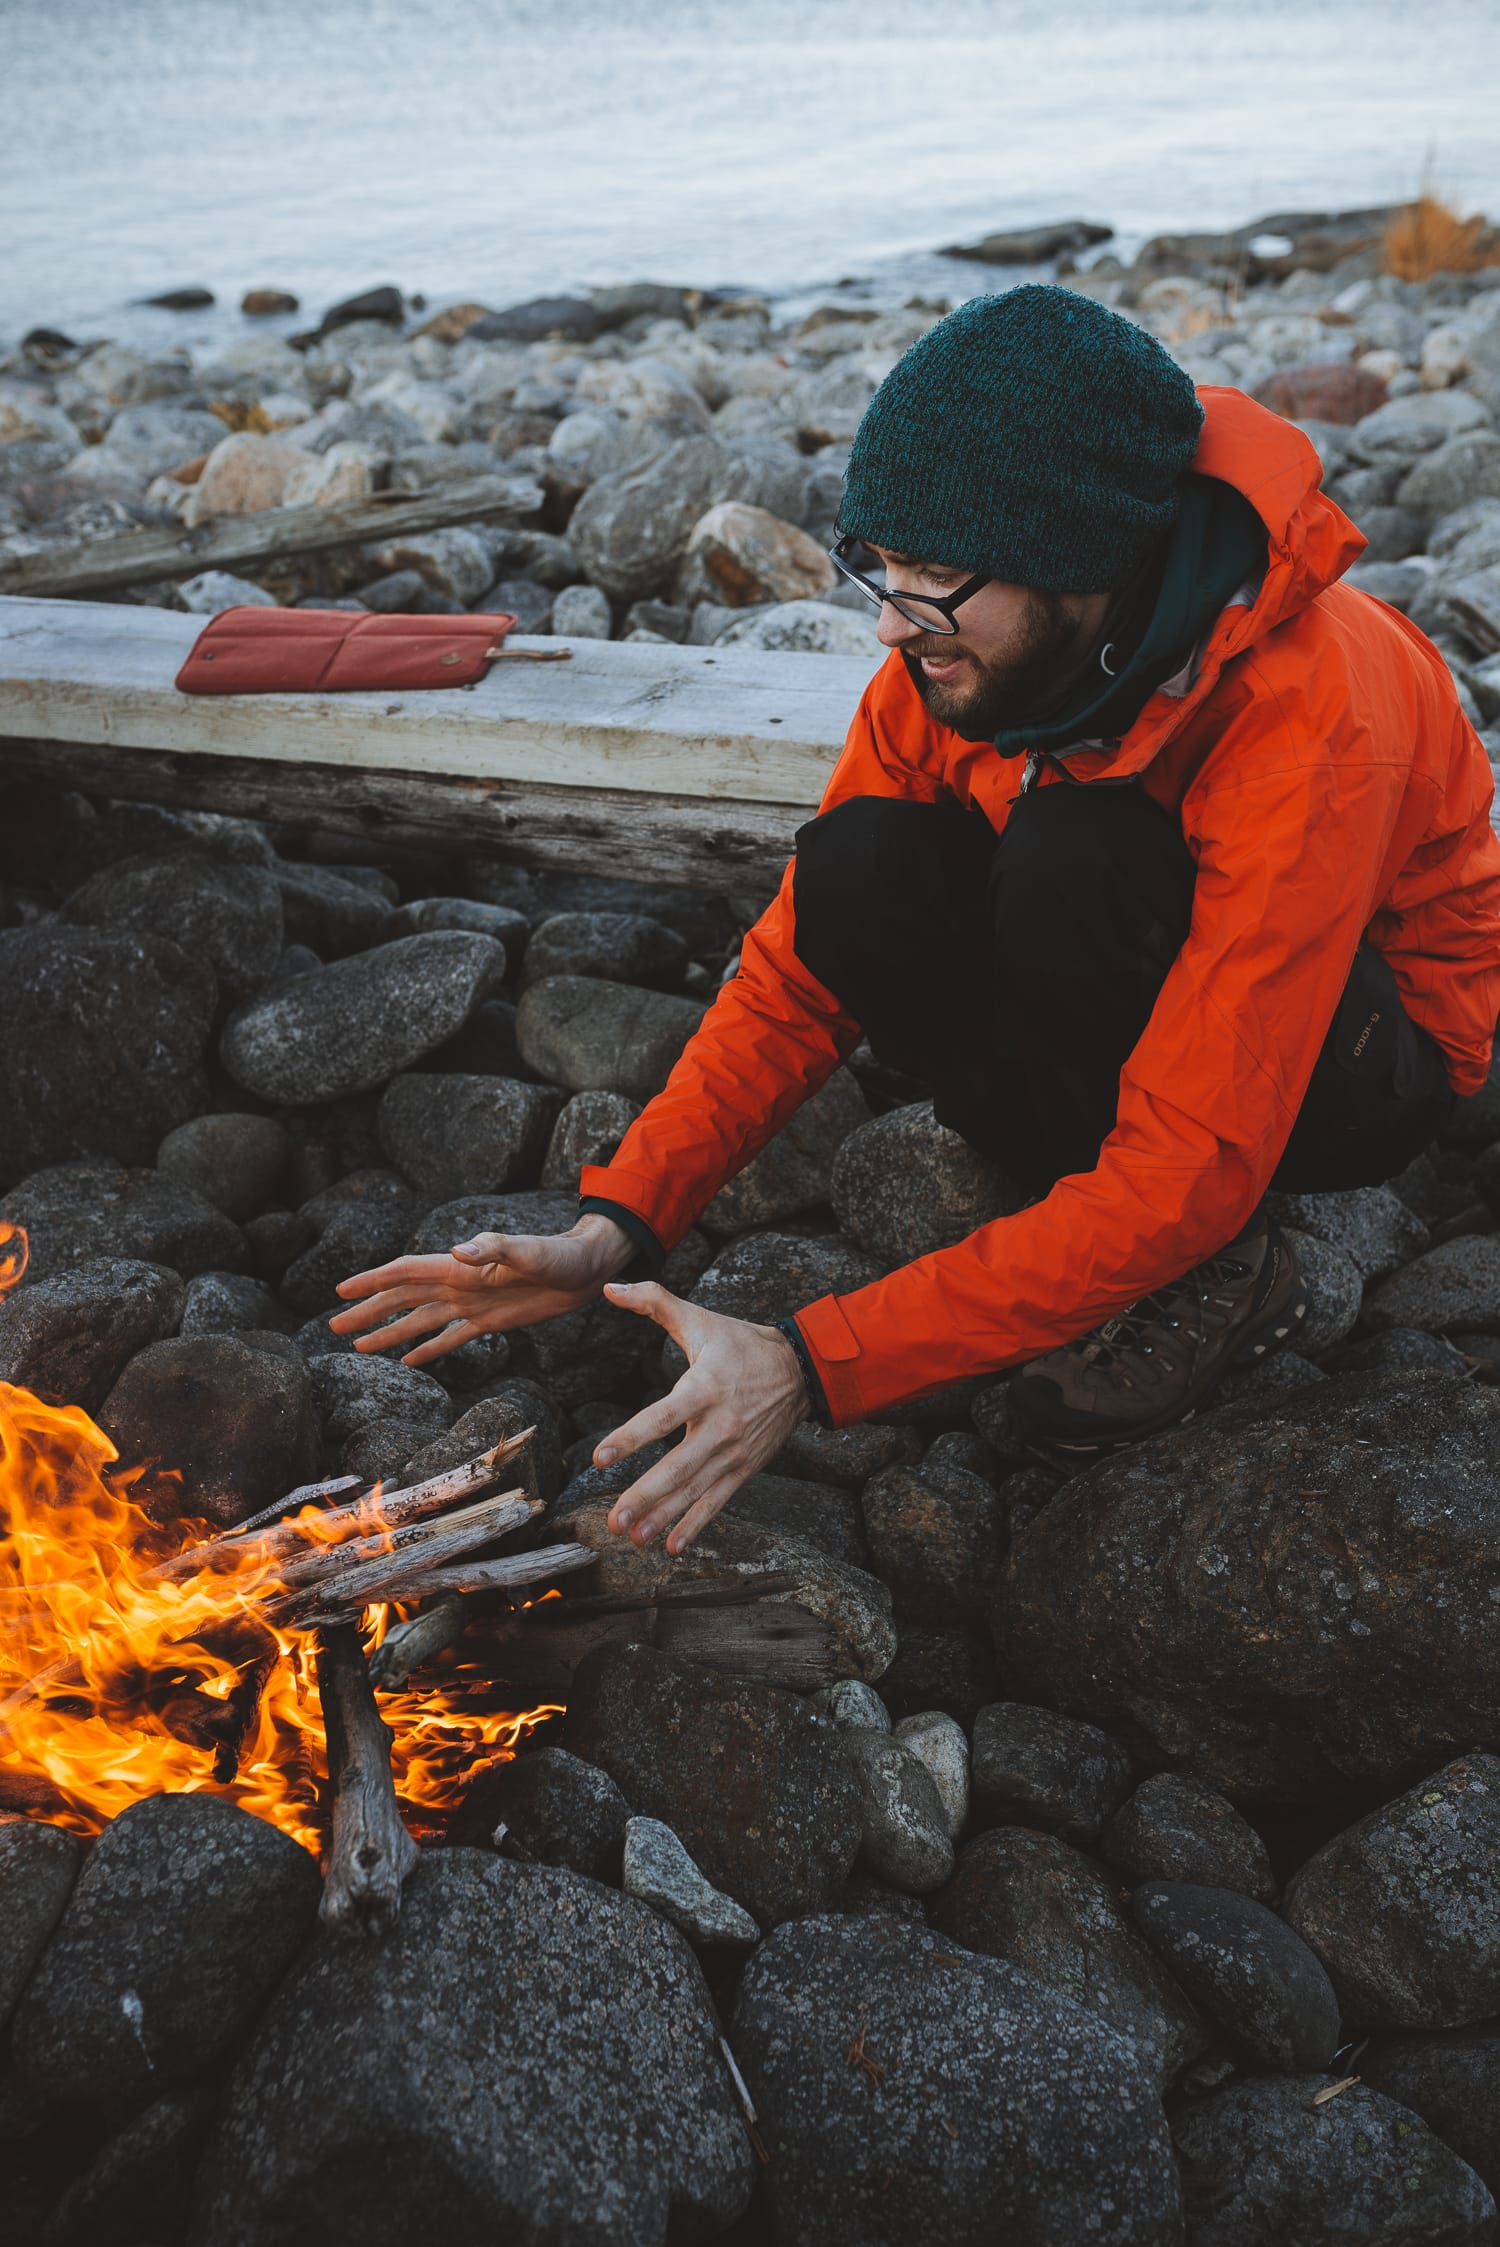 man warming his hands by a fire